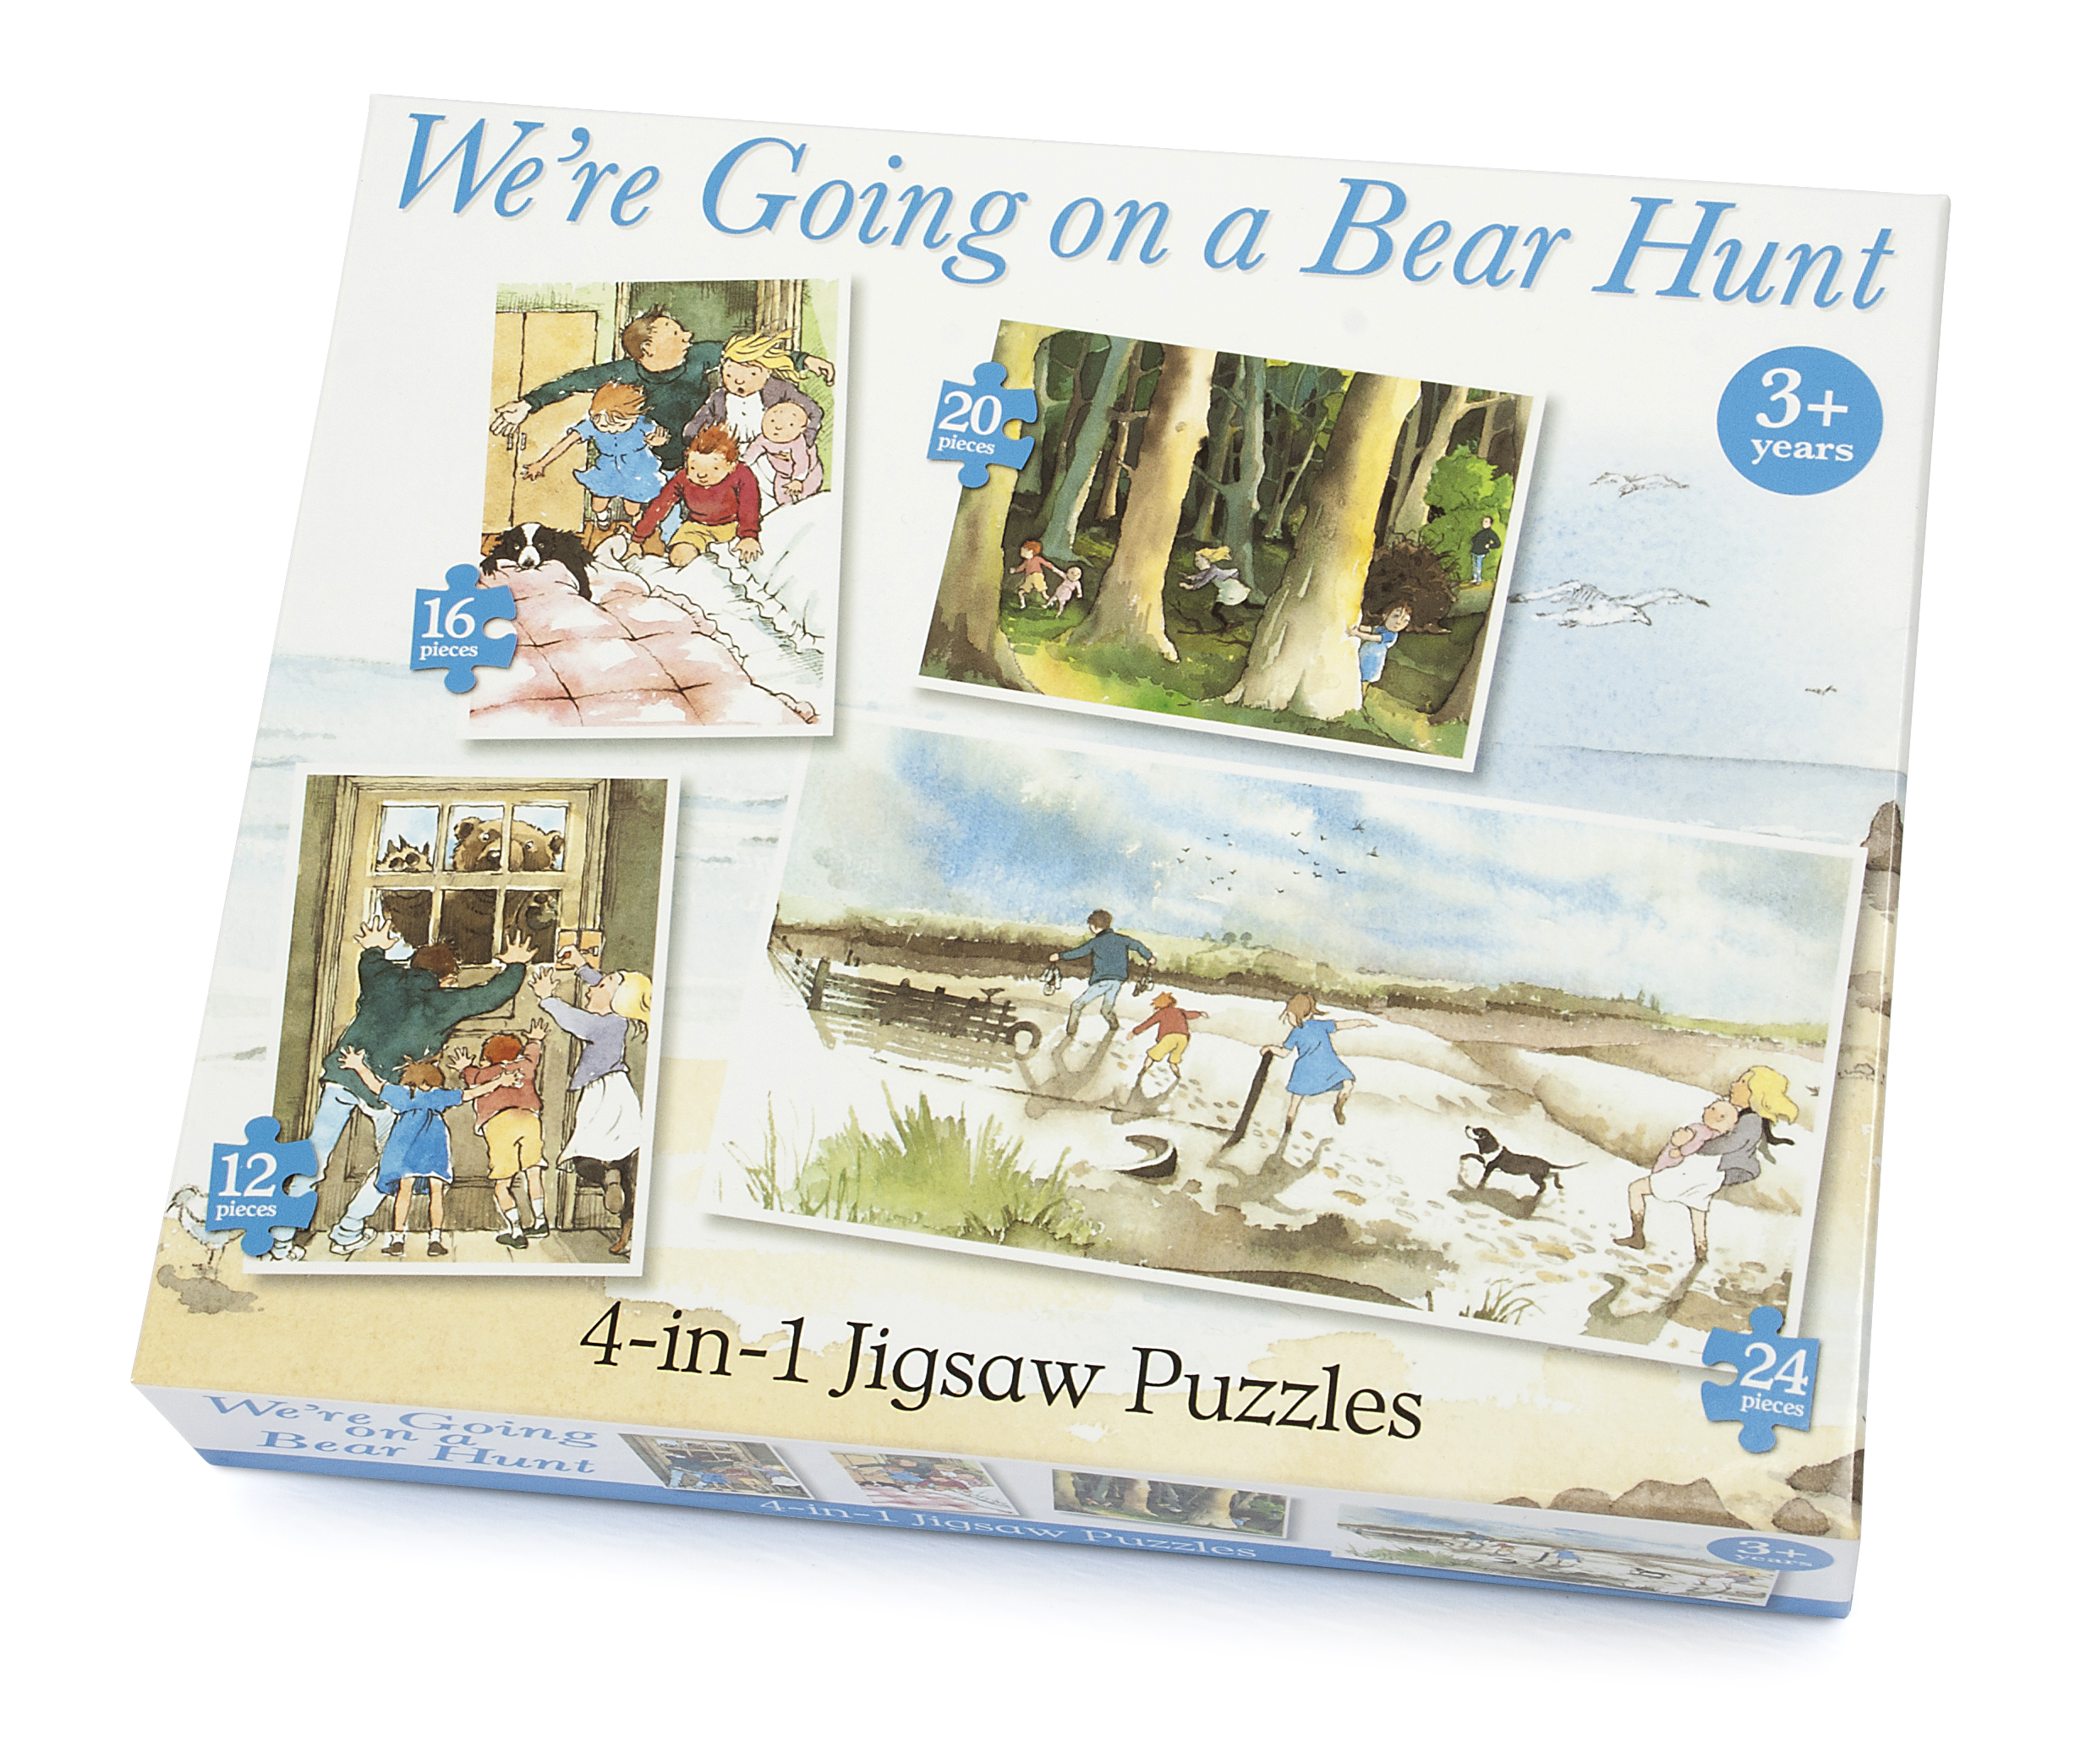 We're Going on a Bear Hunt 4-in-1 Puzzle